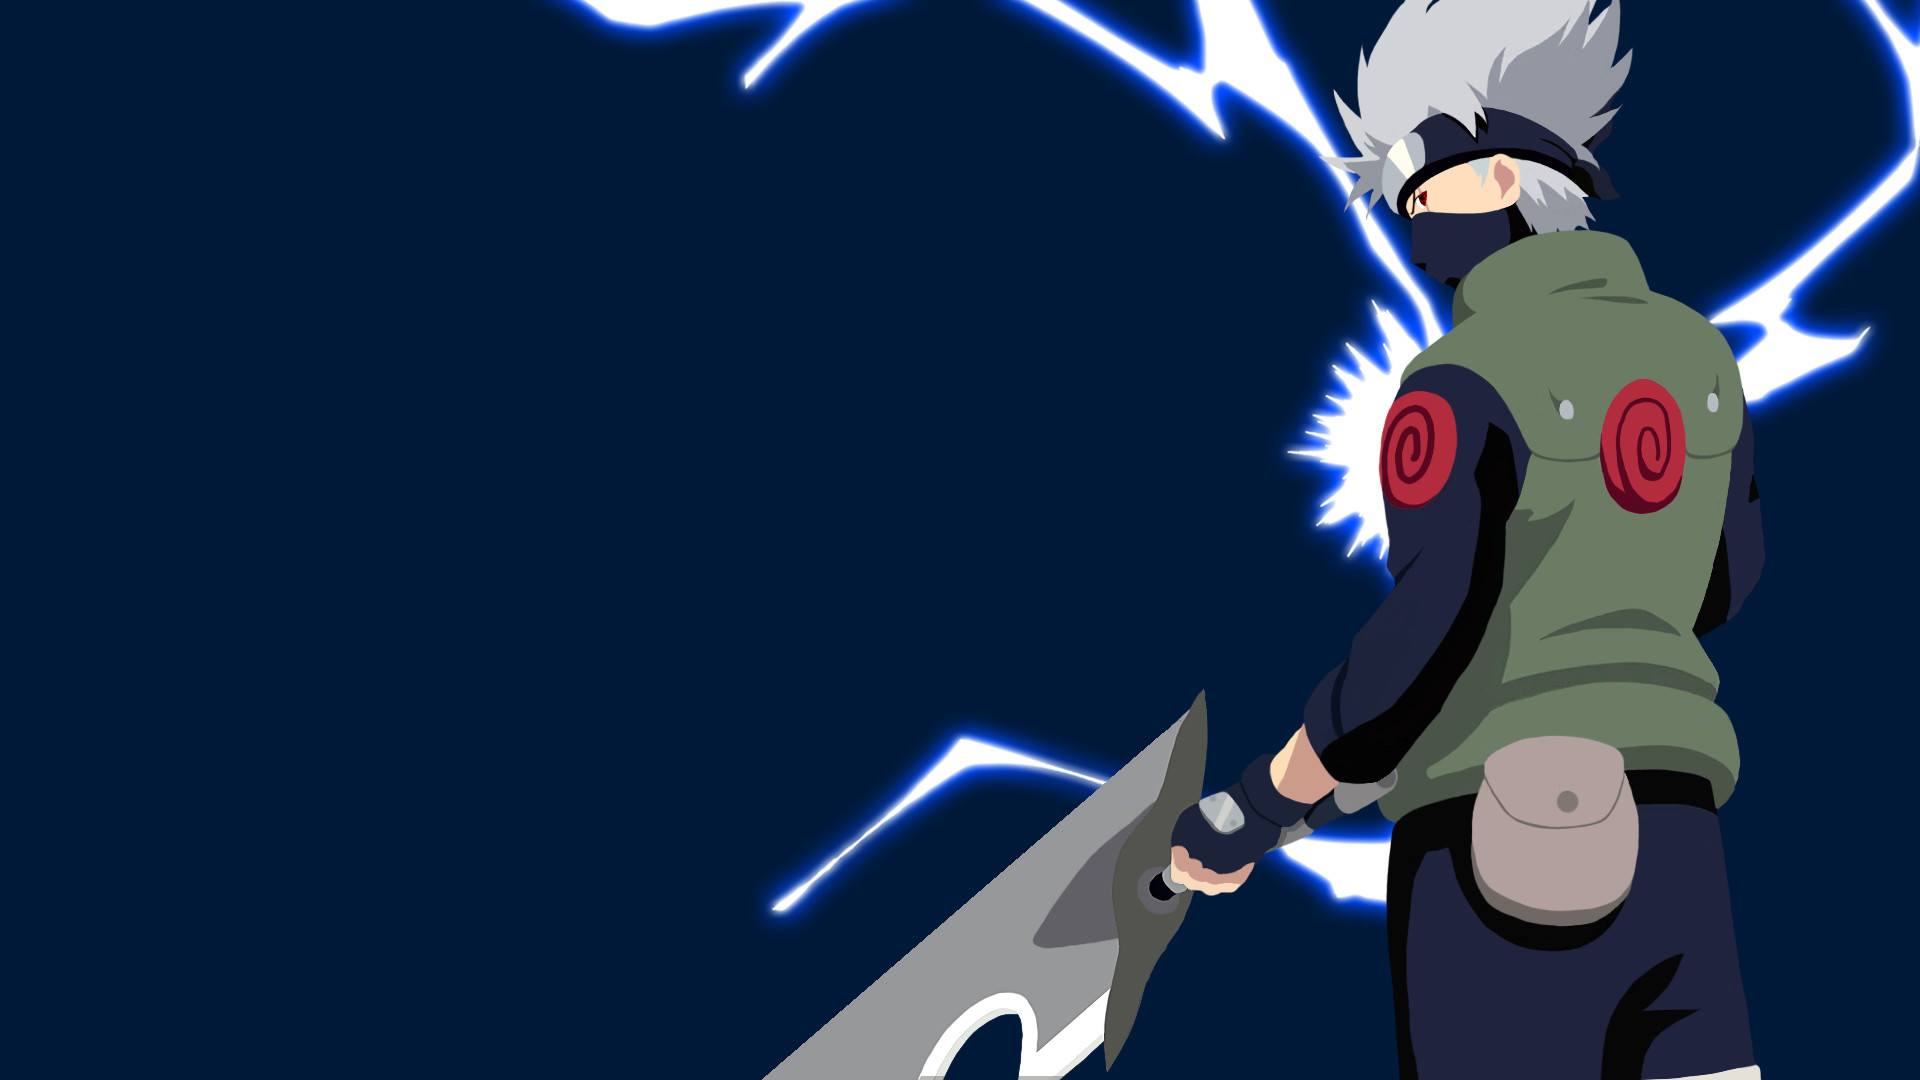 1920x1080 Kakashi Hatake HD Wallpapers Backgrounds Wallpaper